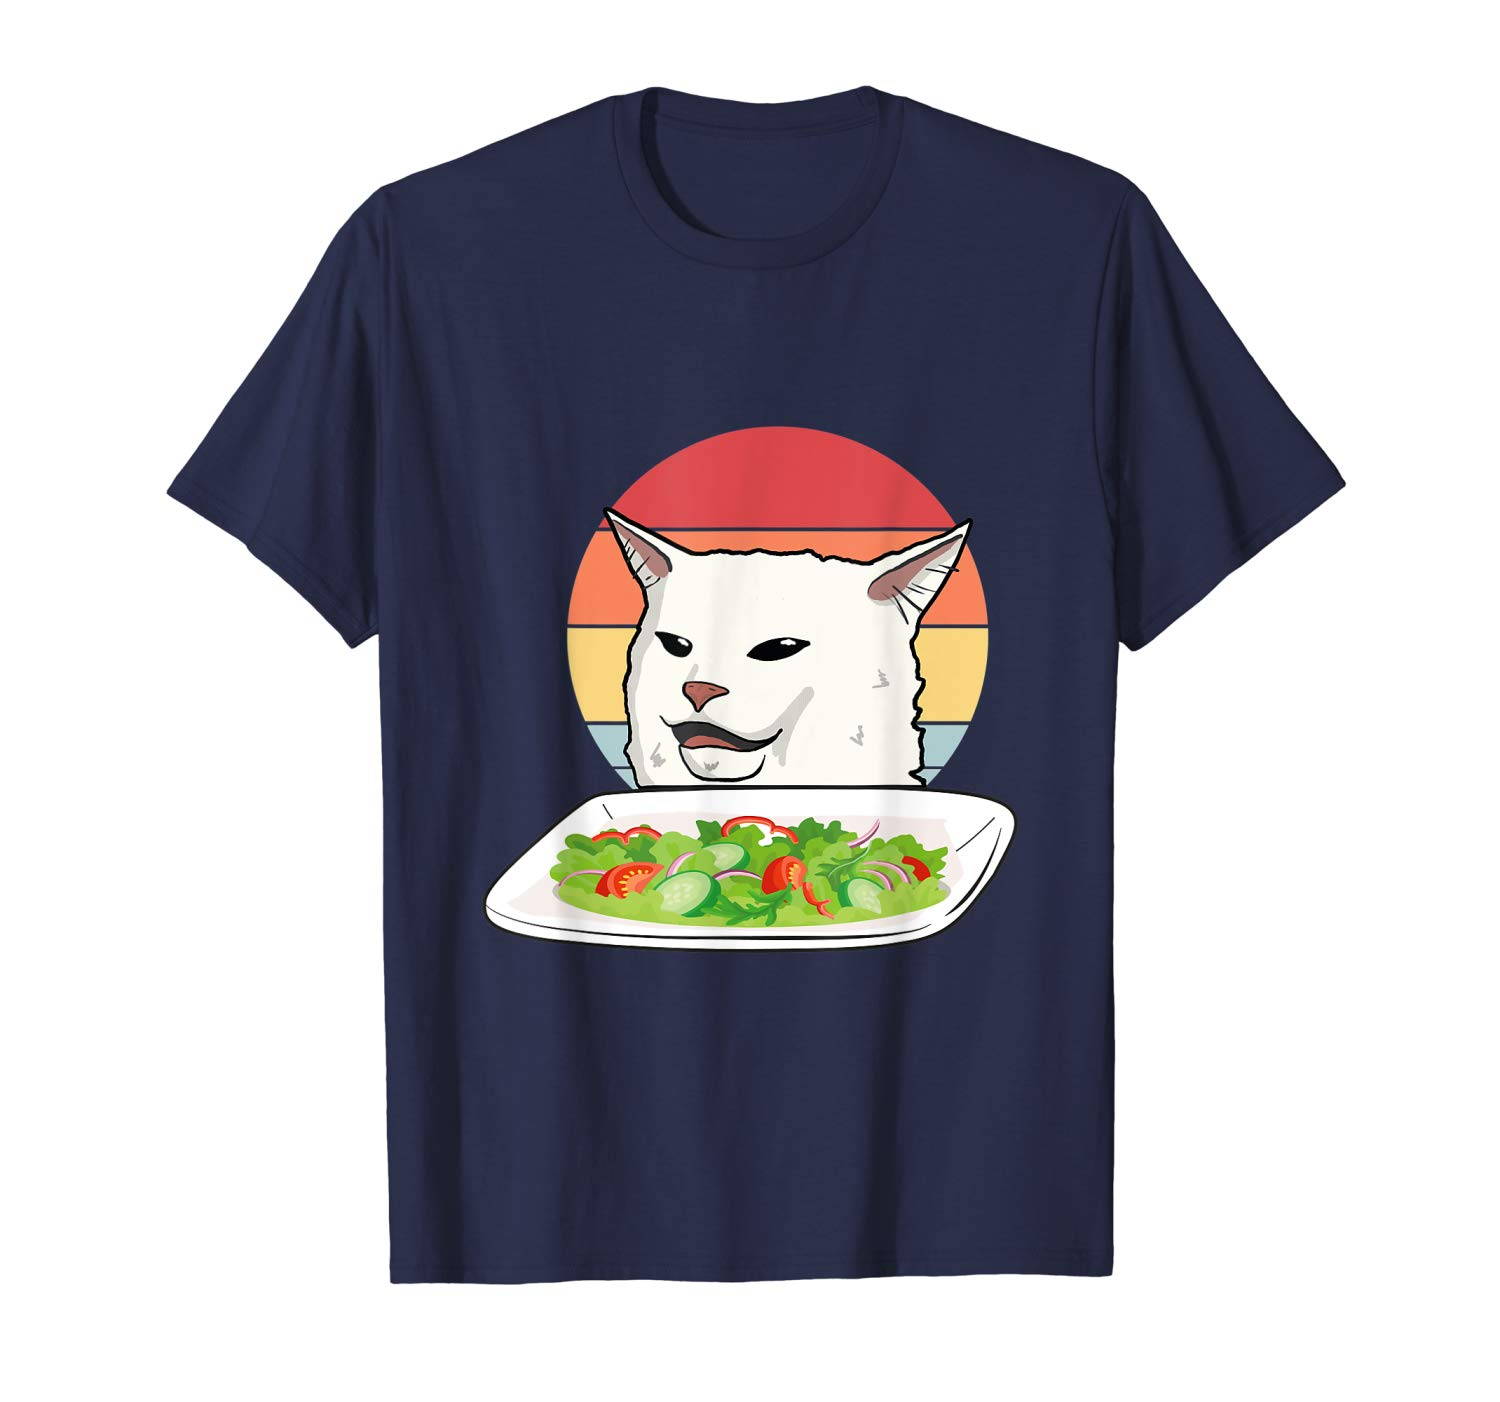 Angry Women Yelling At Confused Cat At Dinner Table Meme T-Shirt Dank Meme  Confused Fat Cat Looking At Confused Cat Meme